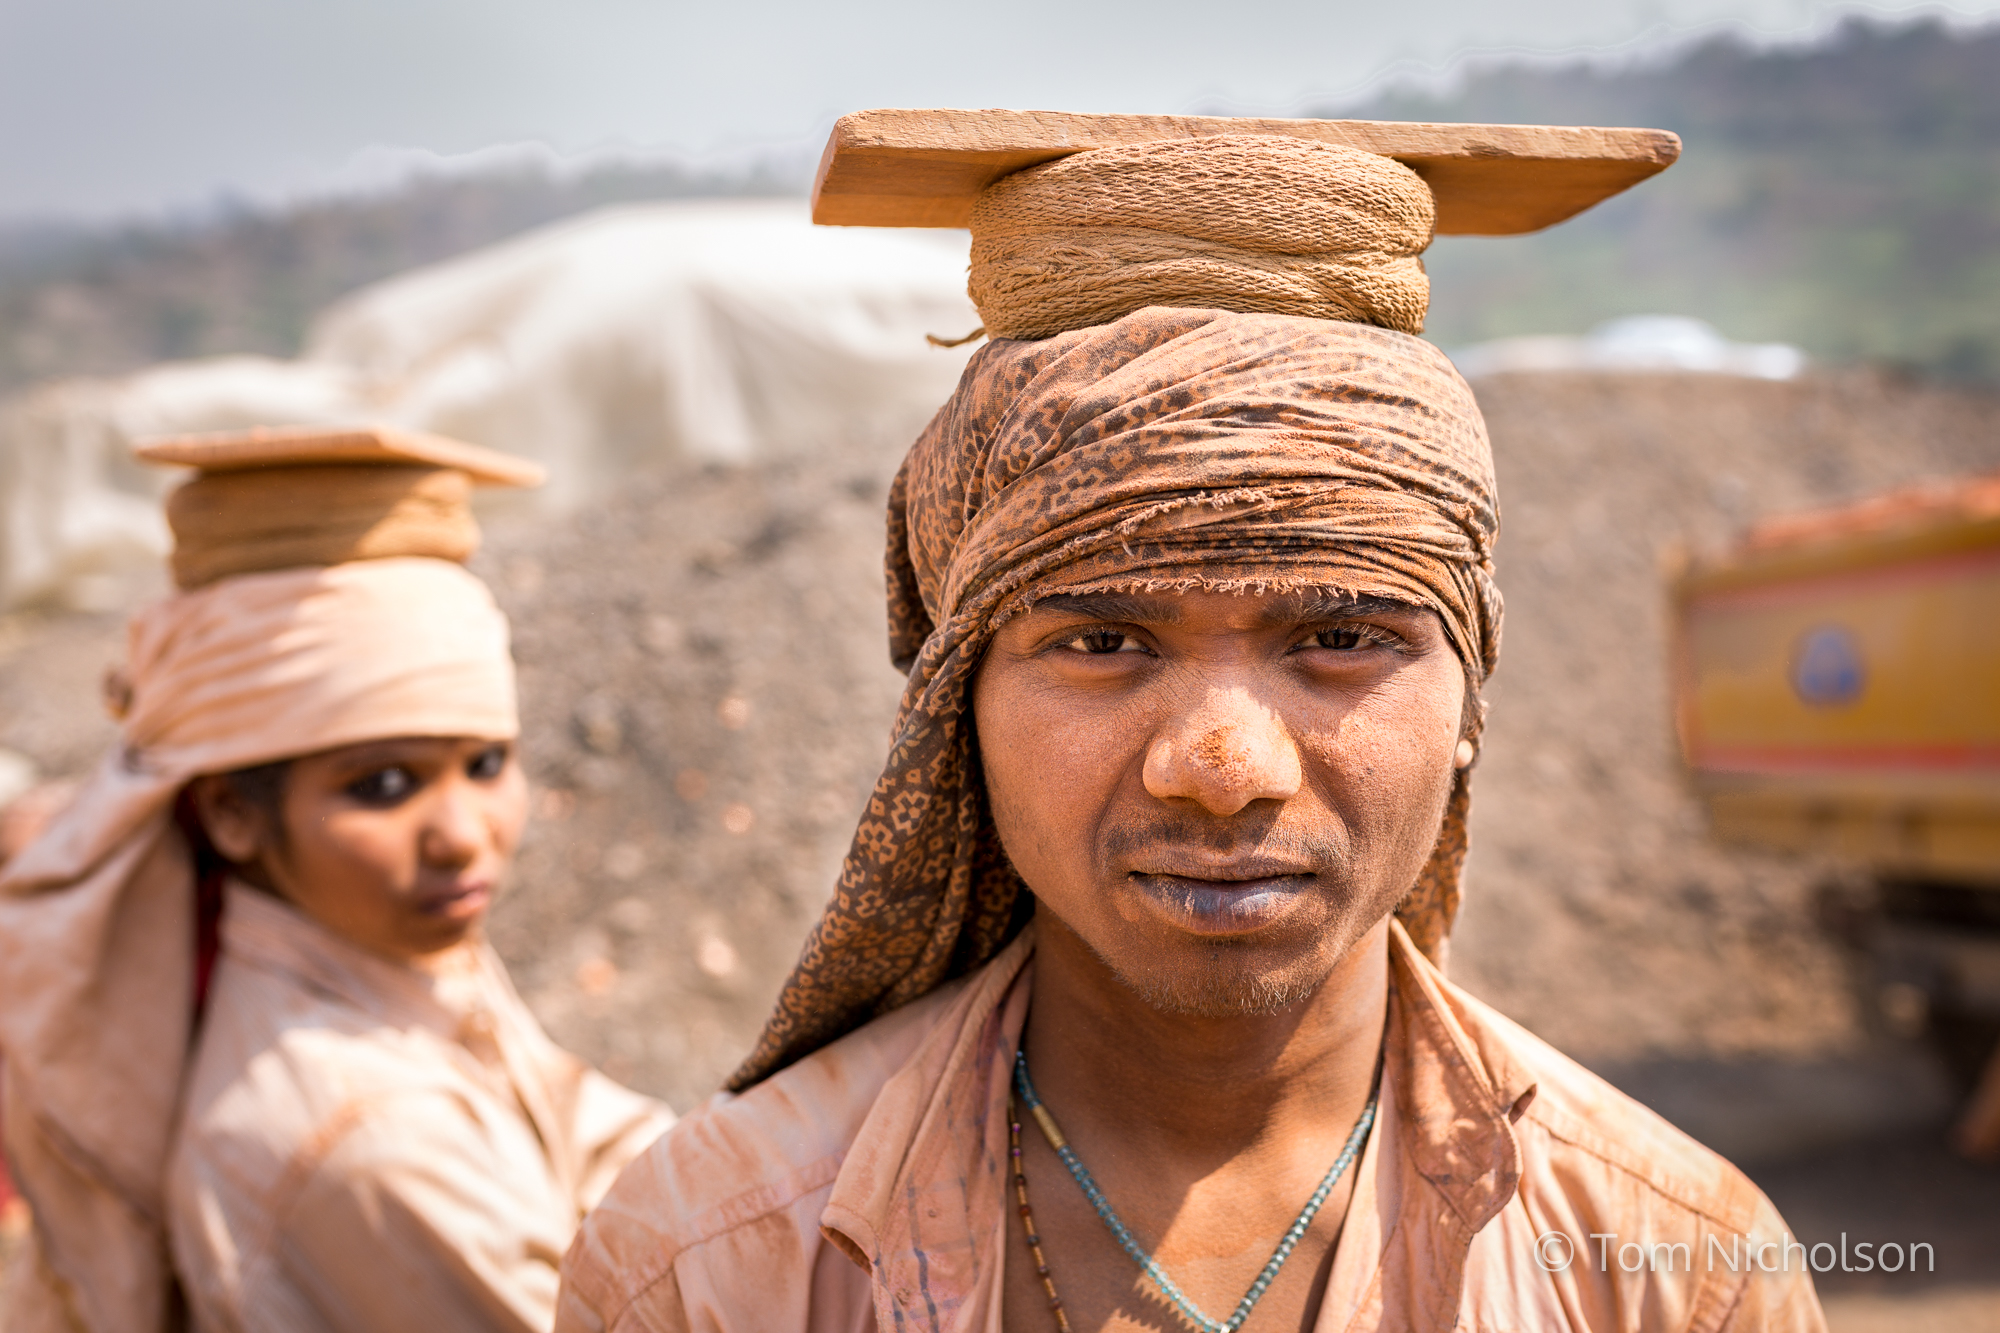 Labourers carry bricks in the UK brickworks factory in Bungamati, Kathmandu, Nepal on 15 March 2016. Around 400 labourers, including children, work in very dusty and hot conditions.